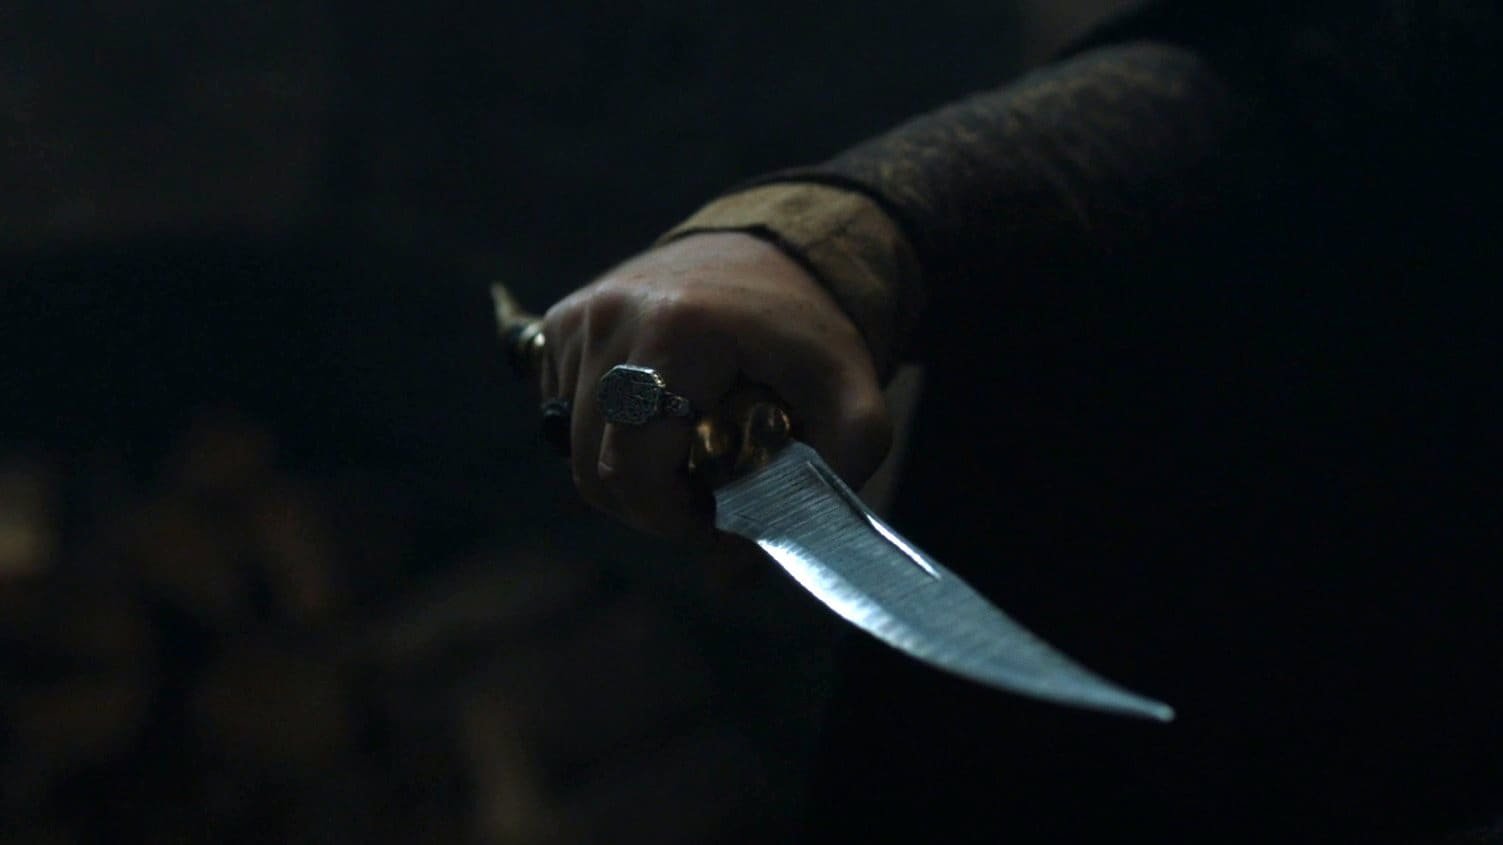 game of thrones dagger Game of Thrones